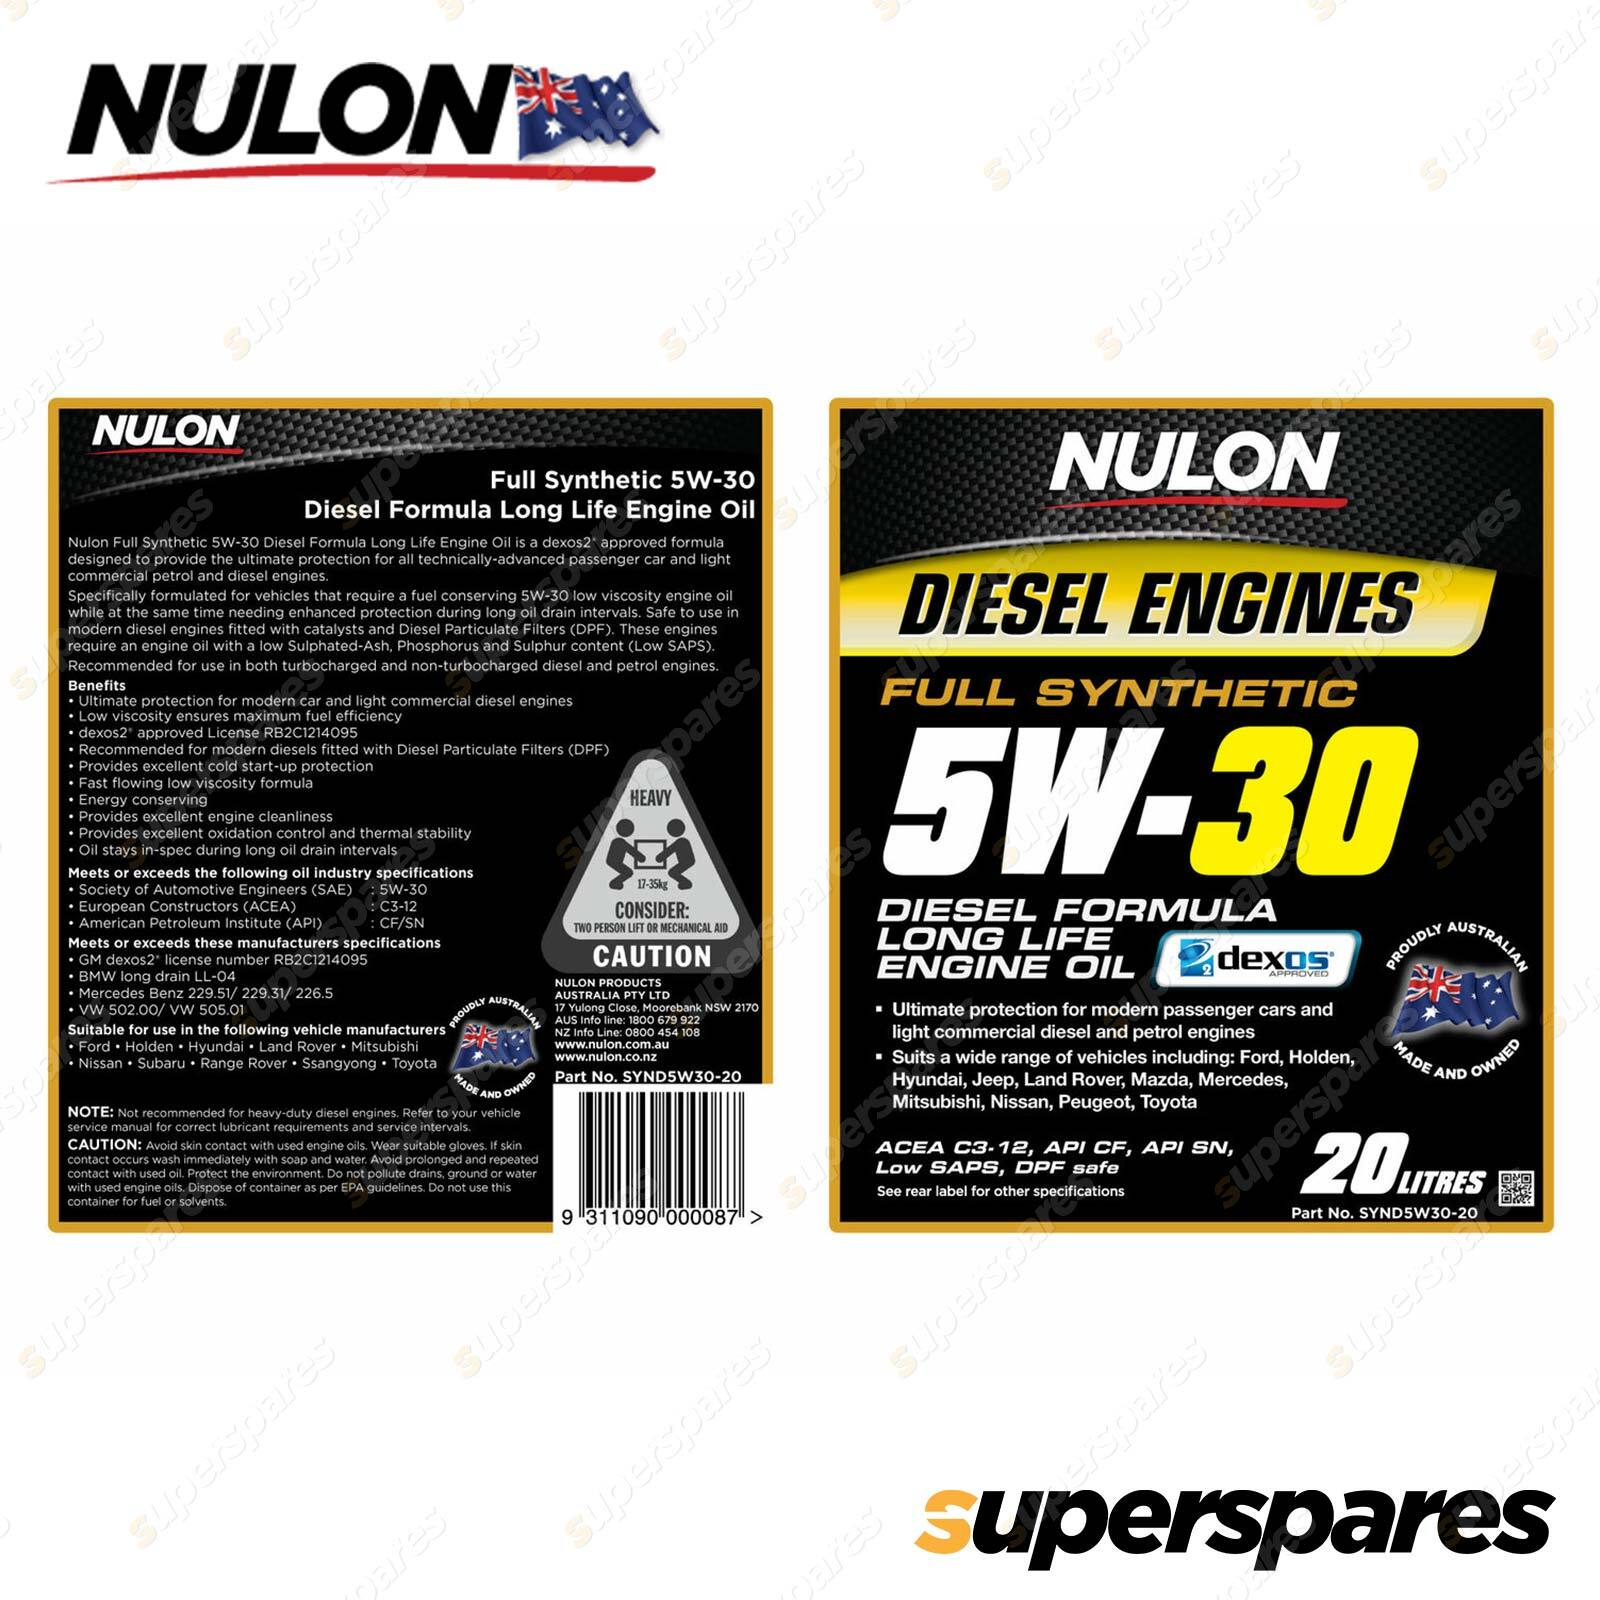 Details about Nulon Full Synthetic 5W-30 Diesel Formula Long Life Engine  Oil 20L SYND5W30-20